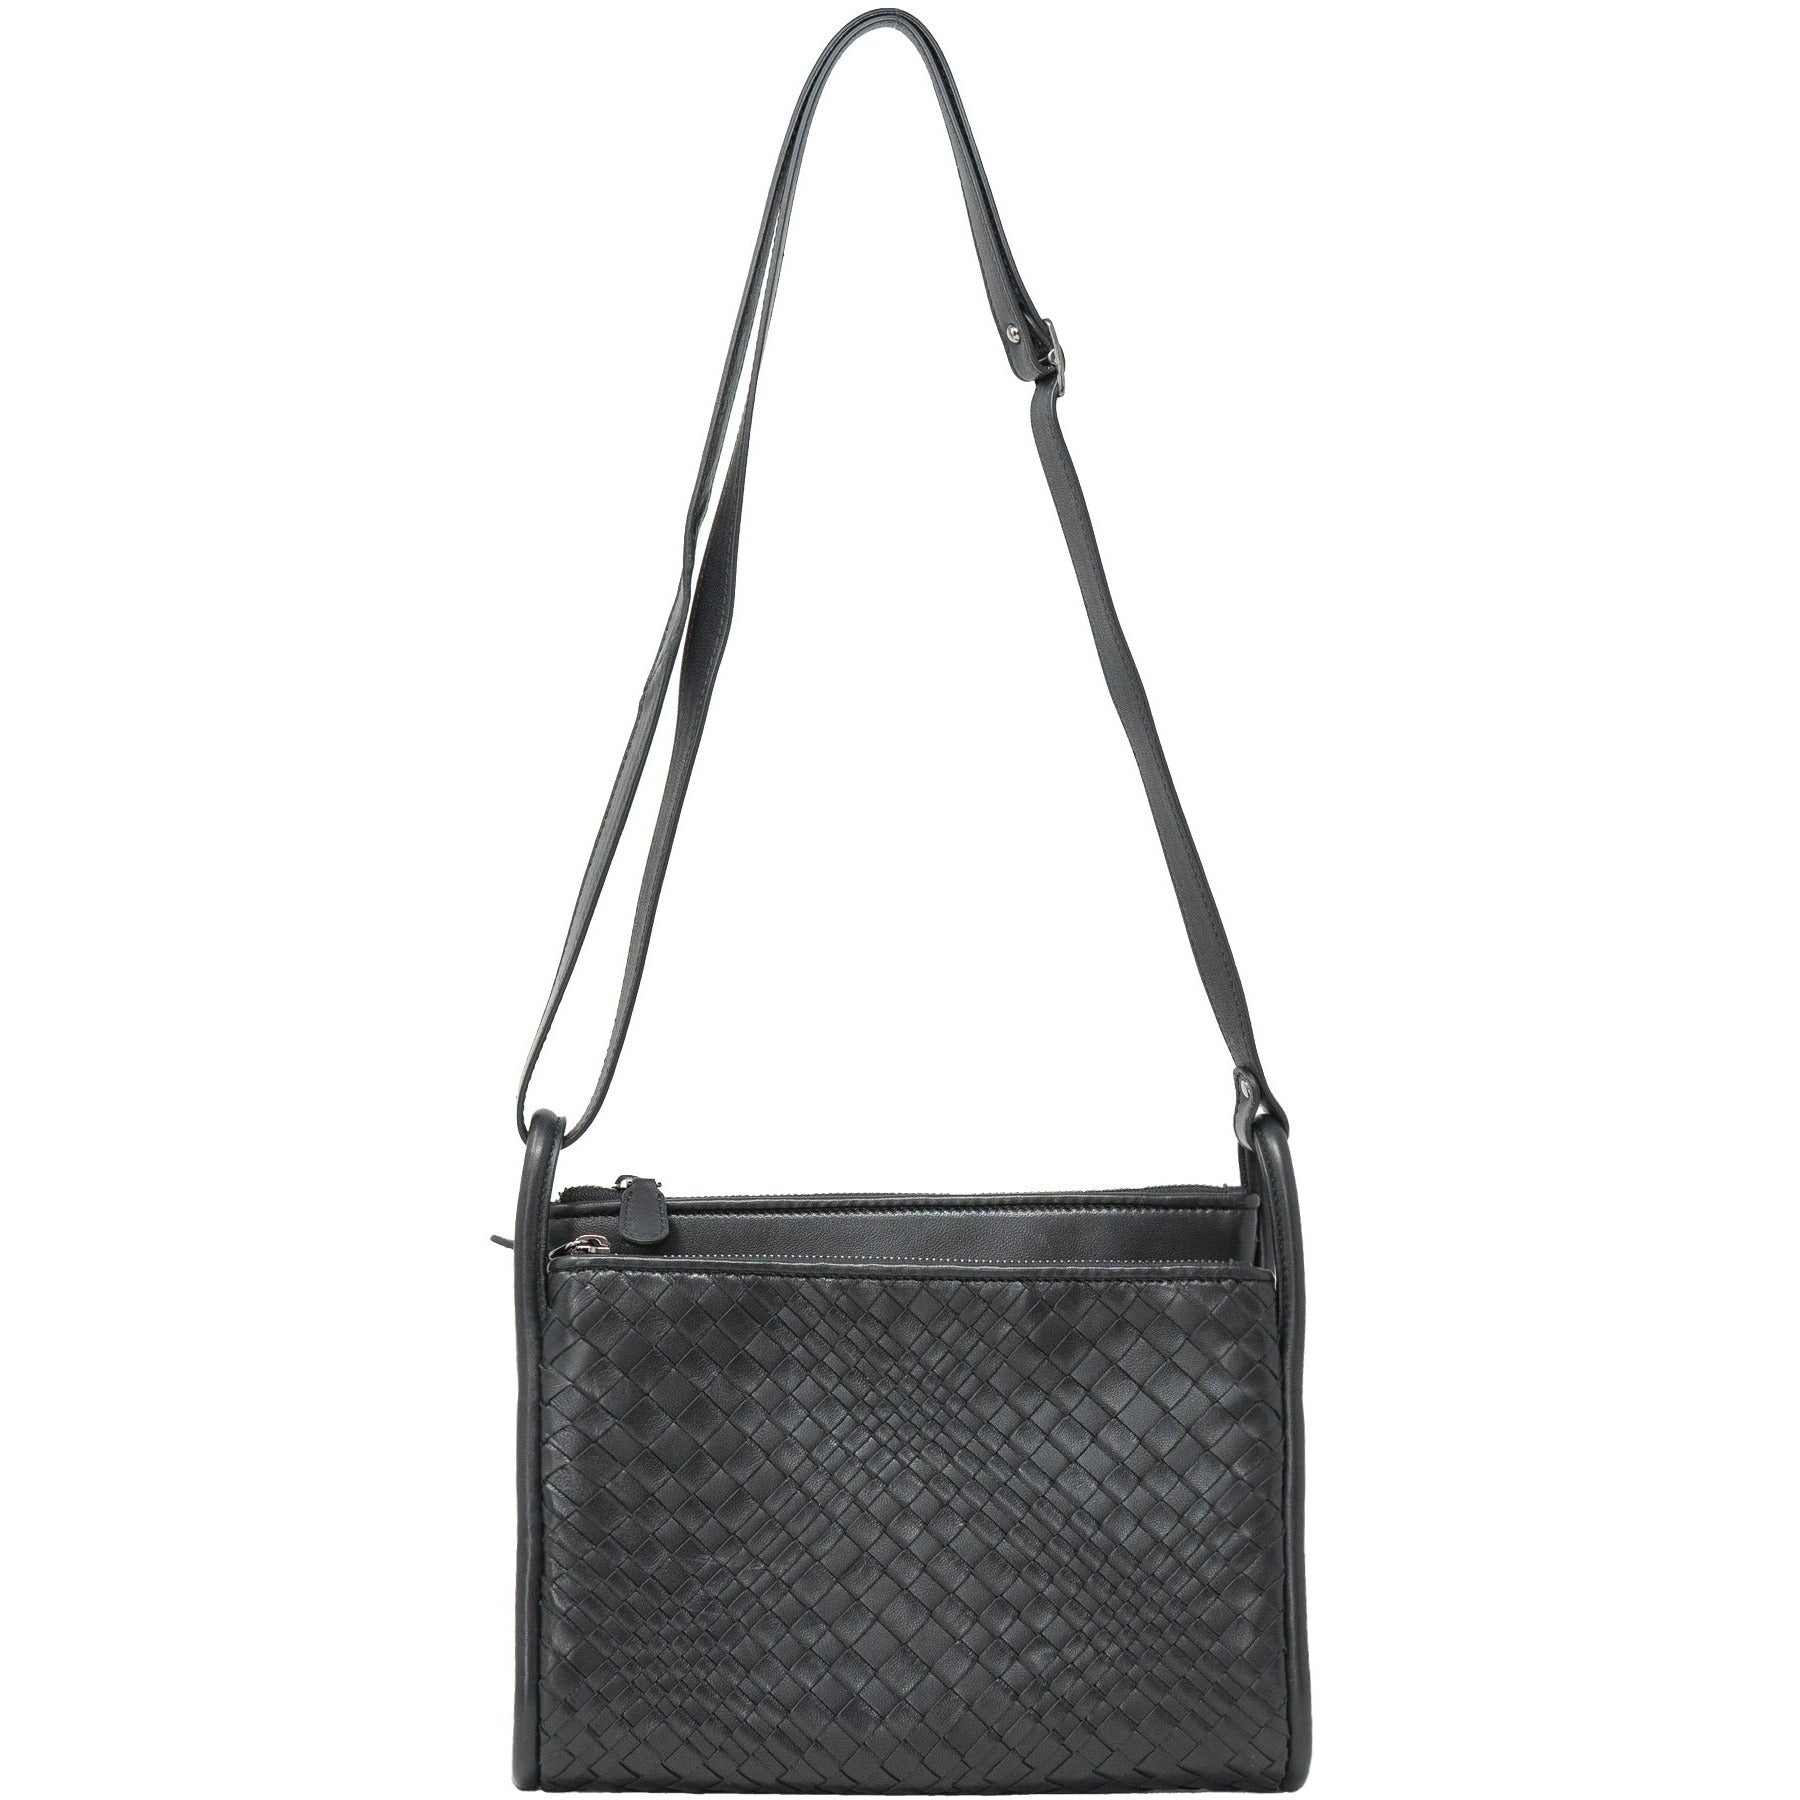 JT334 5557 Intrecciato Optical Leather Shoulder Bag in Nappa Black - Jennifer Tattanelli